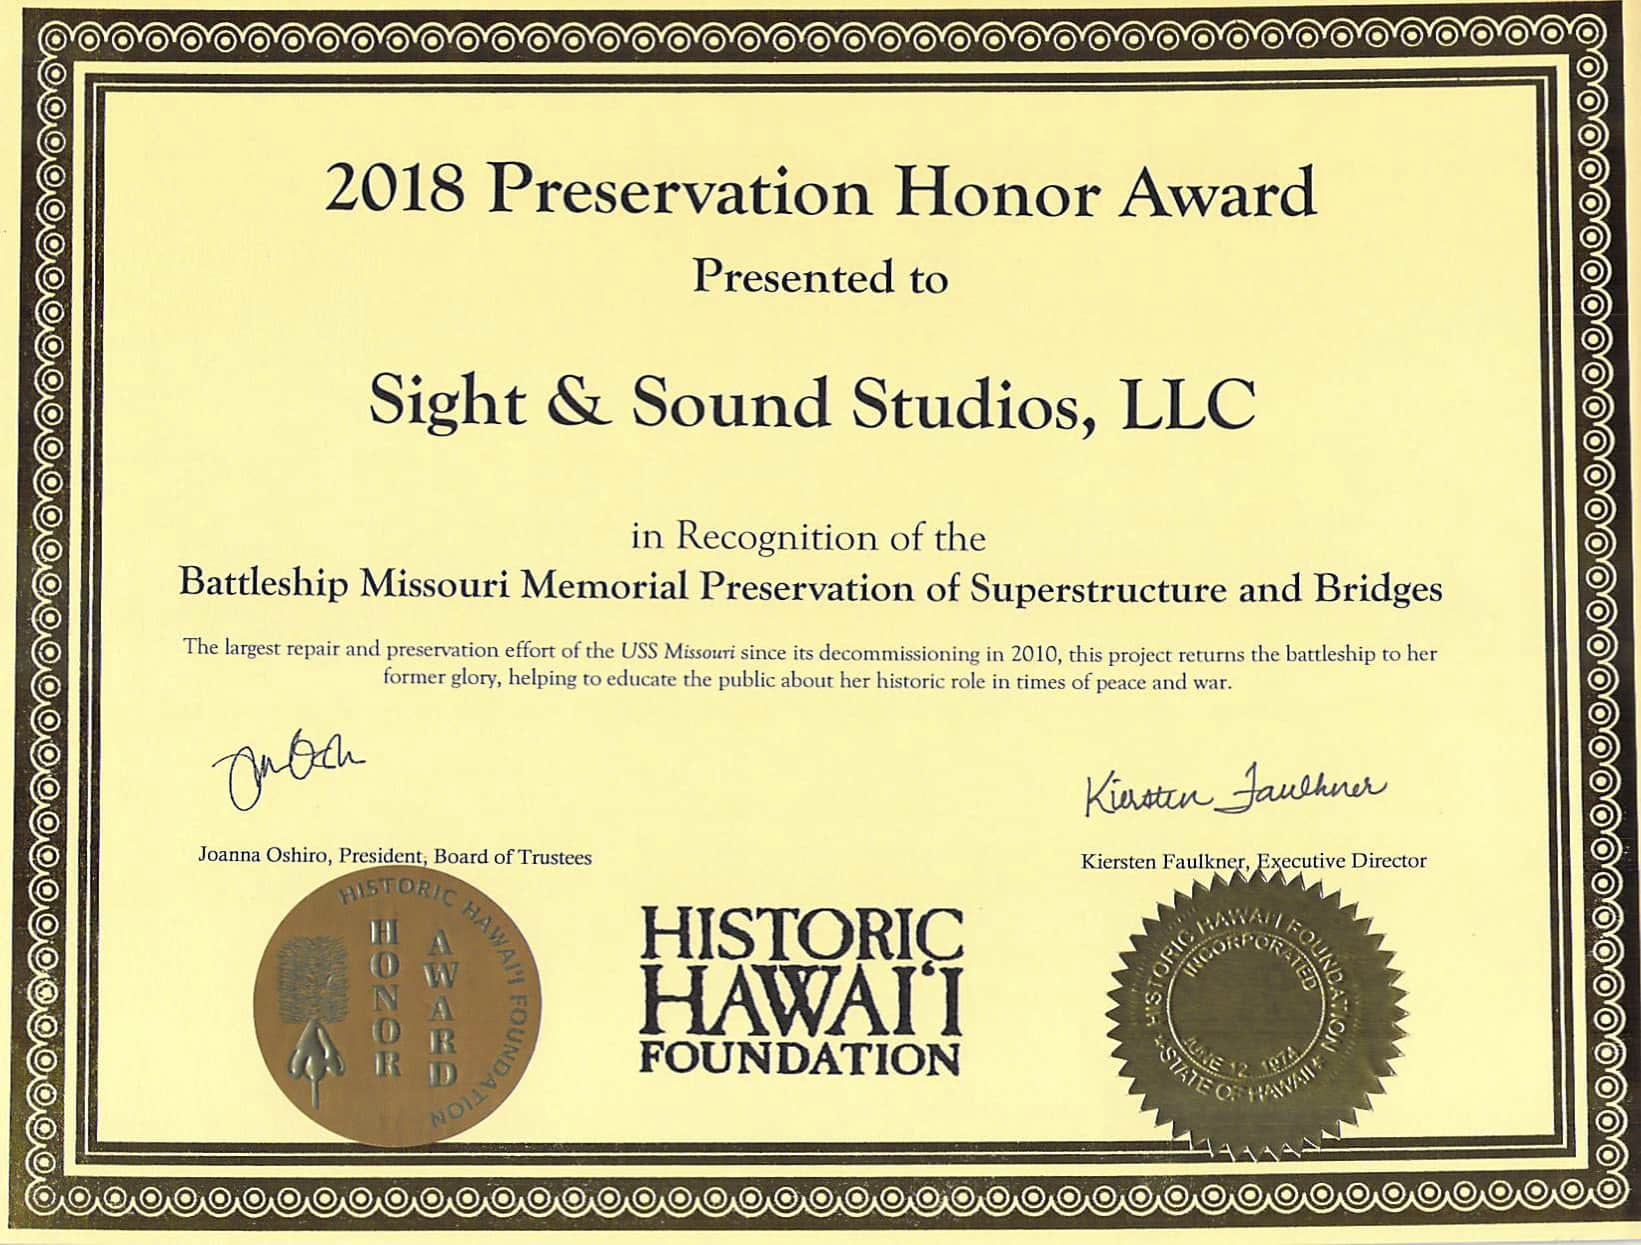 2018 Preservation Honor Award Battleship Missouri.jpg.jpg